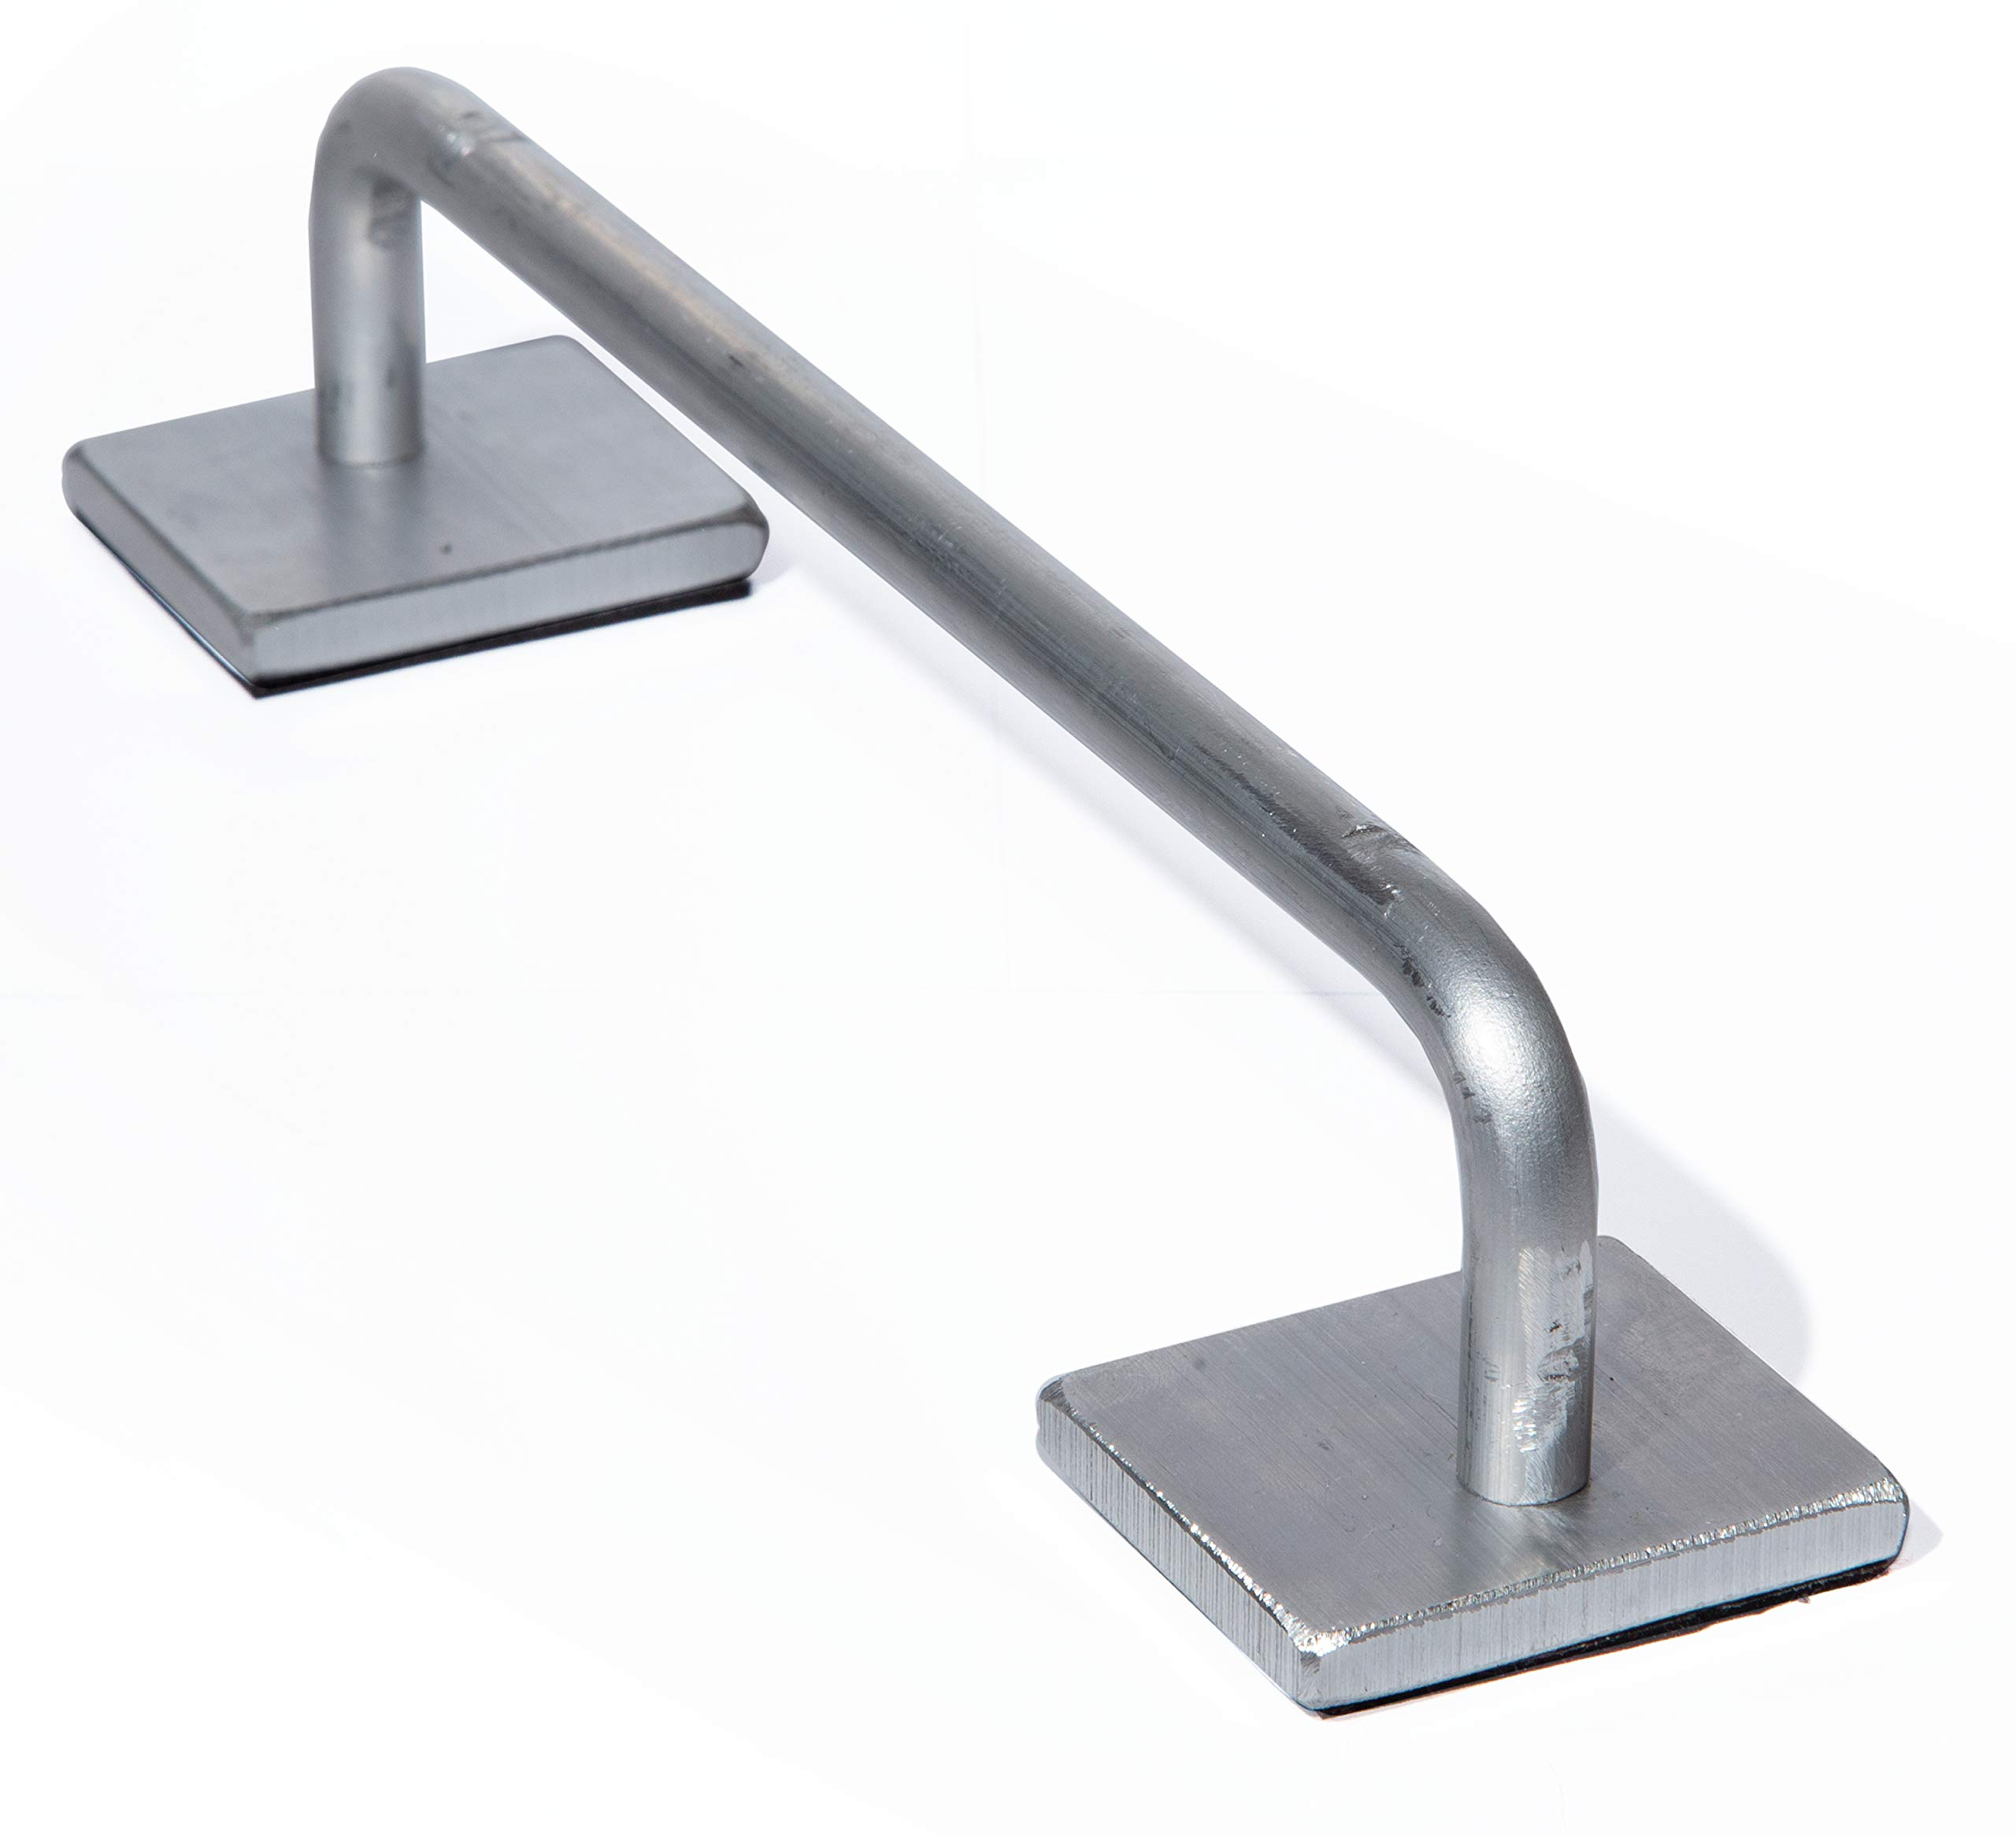 Metal Fingerboard Rails (Medium Straight) Handmade in The USA for Your Fingerboard ramps and Parks by RealiT Rails